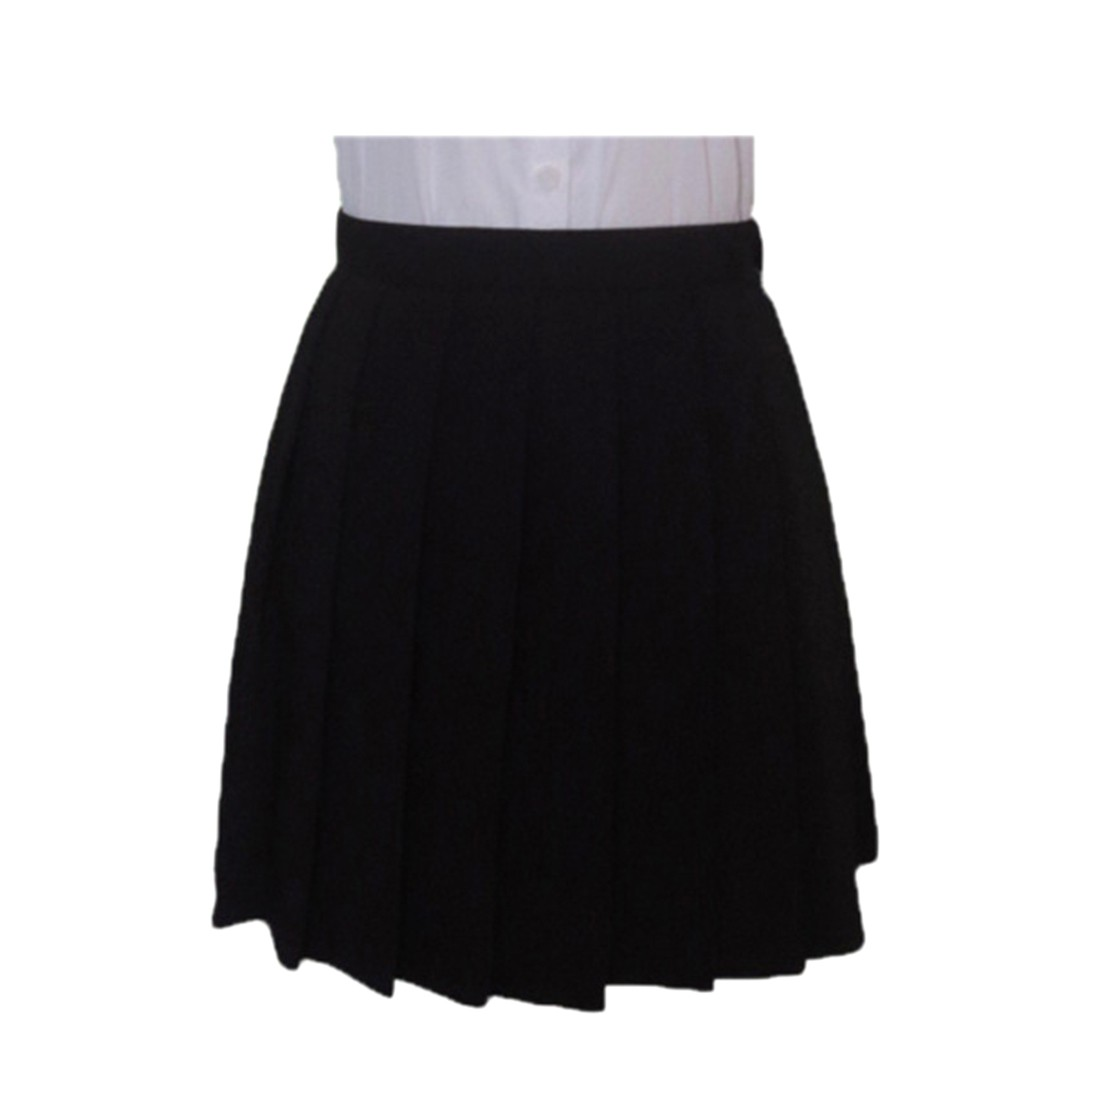 Japanese Student High Waist Macarons COS JK Unifrom Pleated Short Skirt Dress